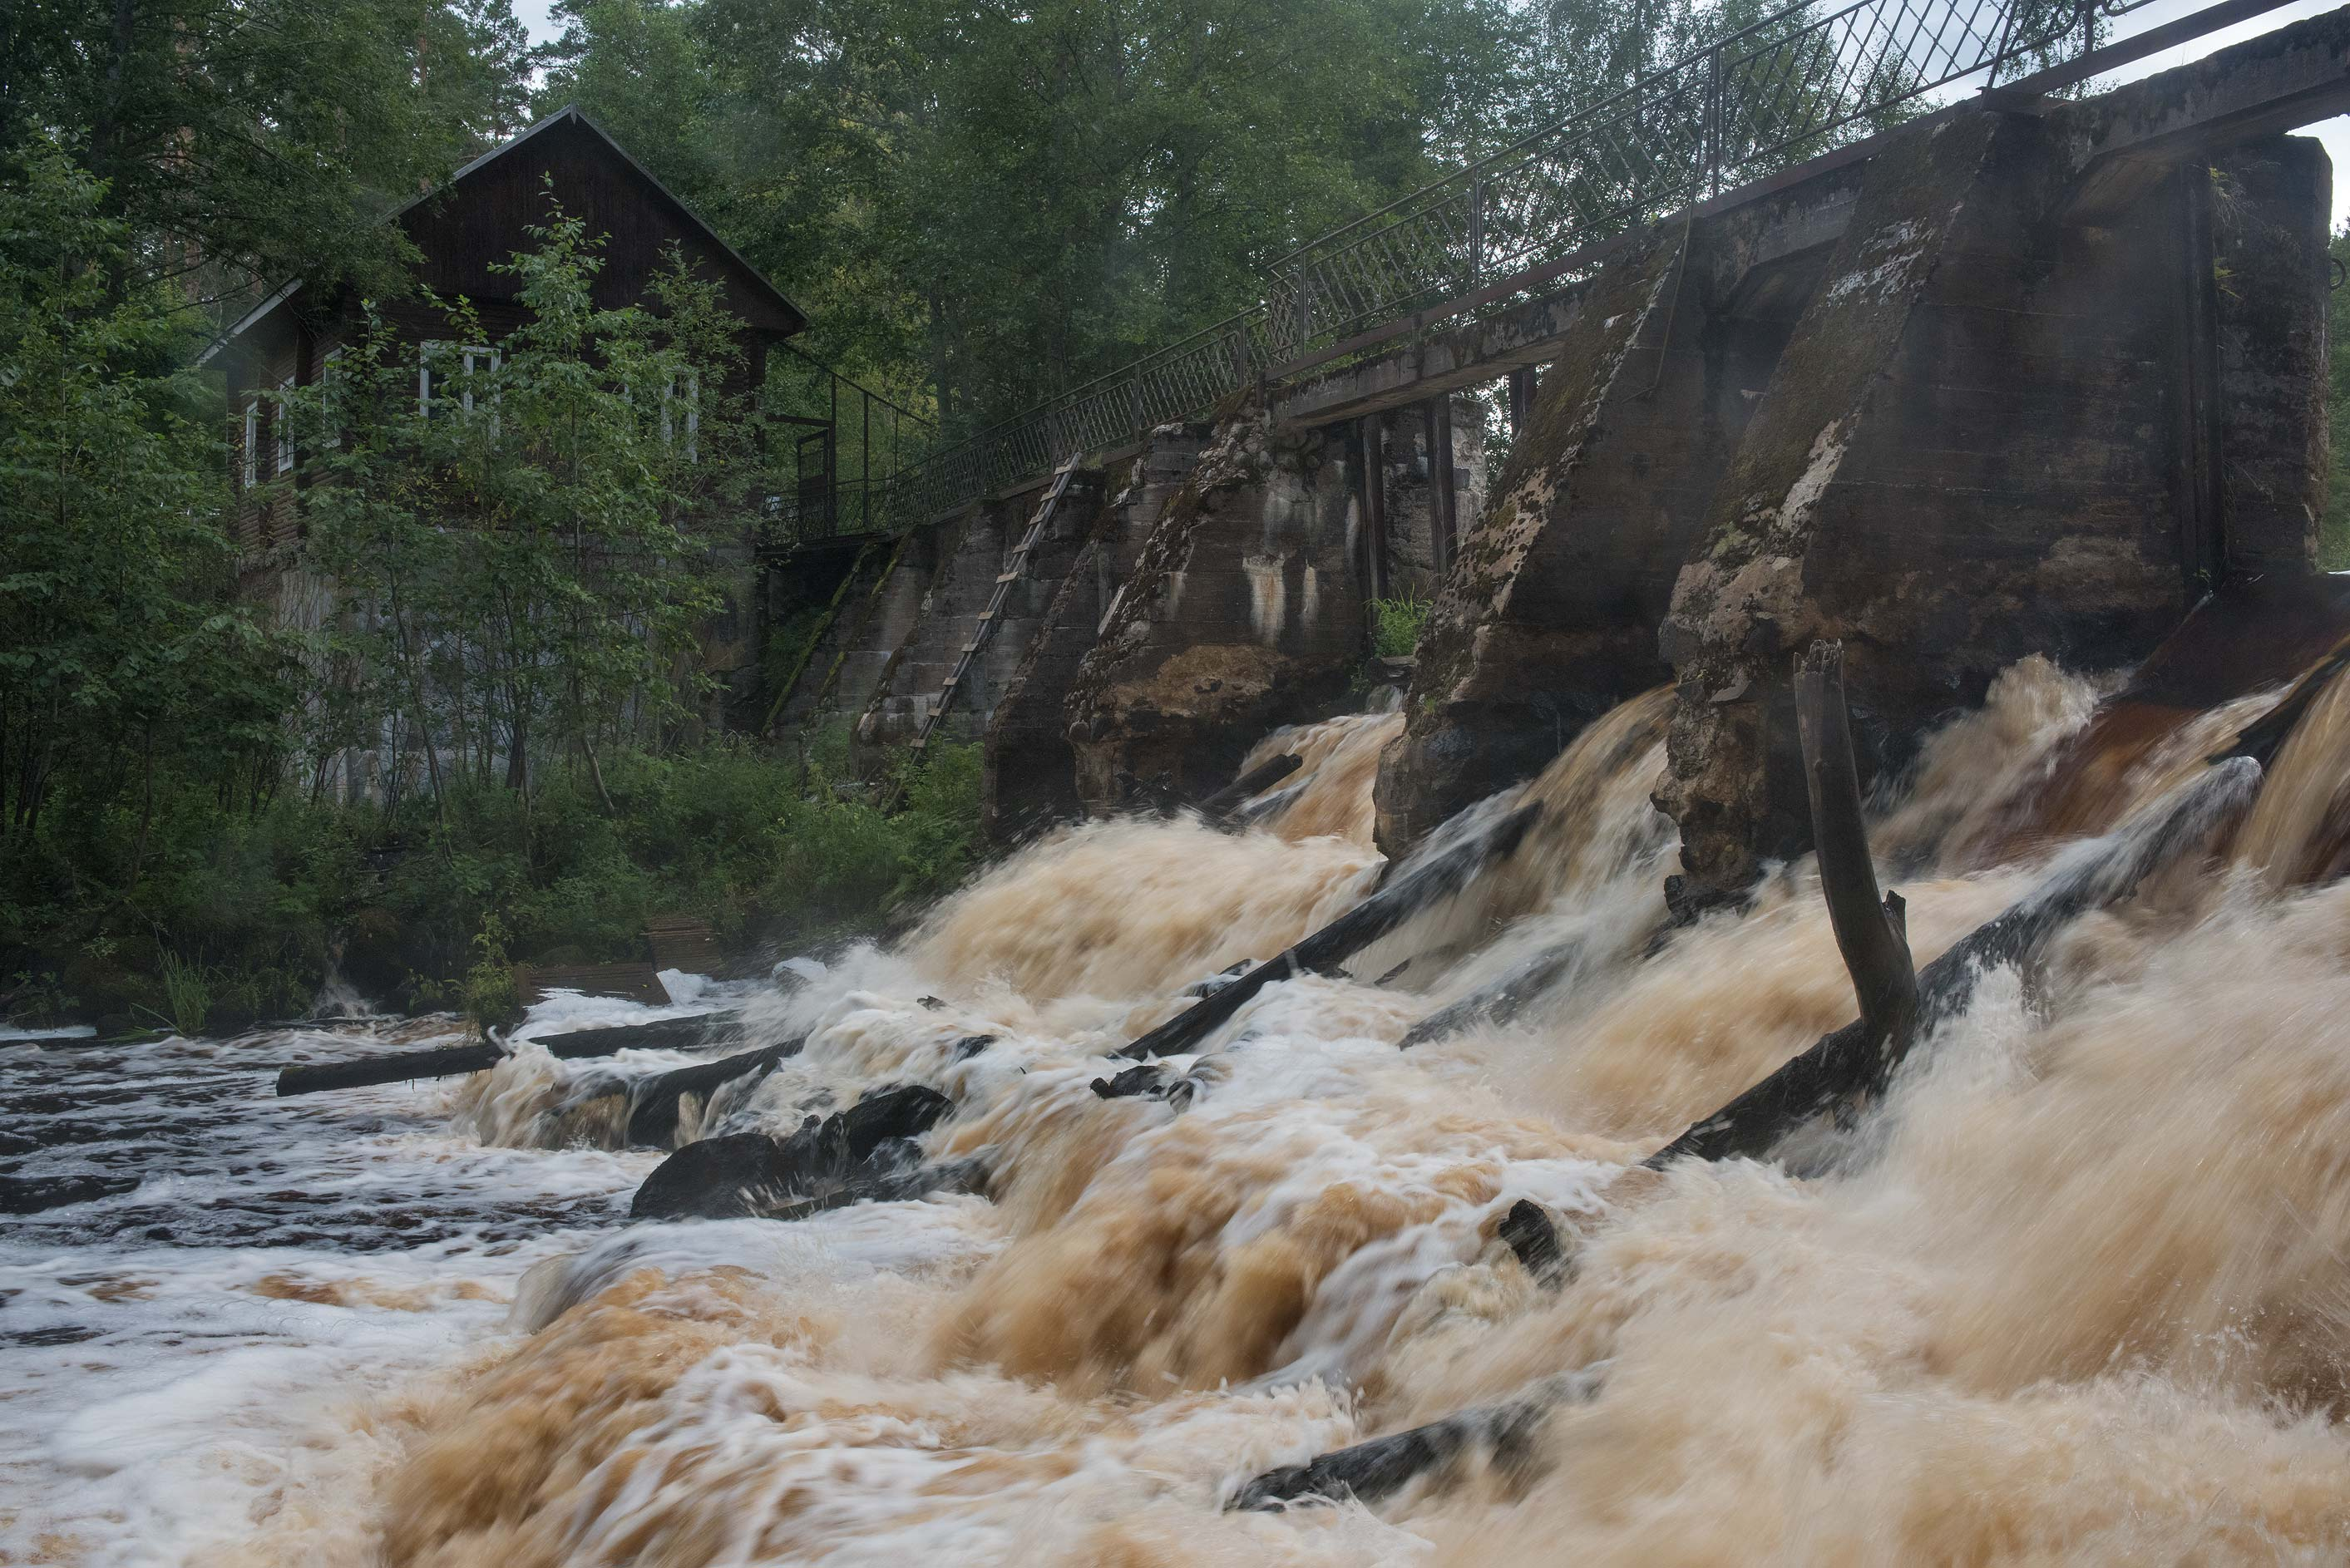 Dam of Volchya River after heavy rains in...miles north from St.Petersburg. Russia